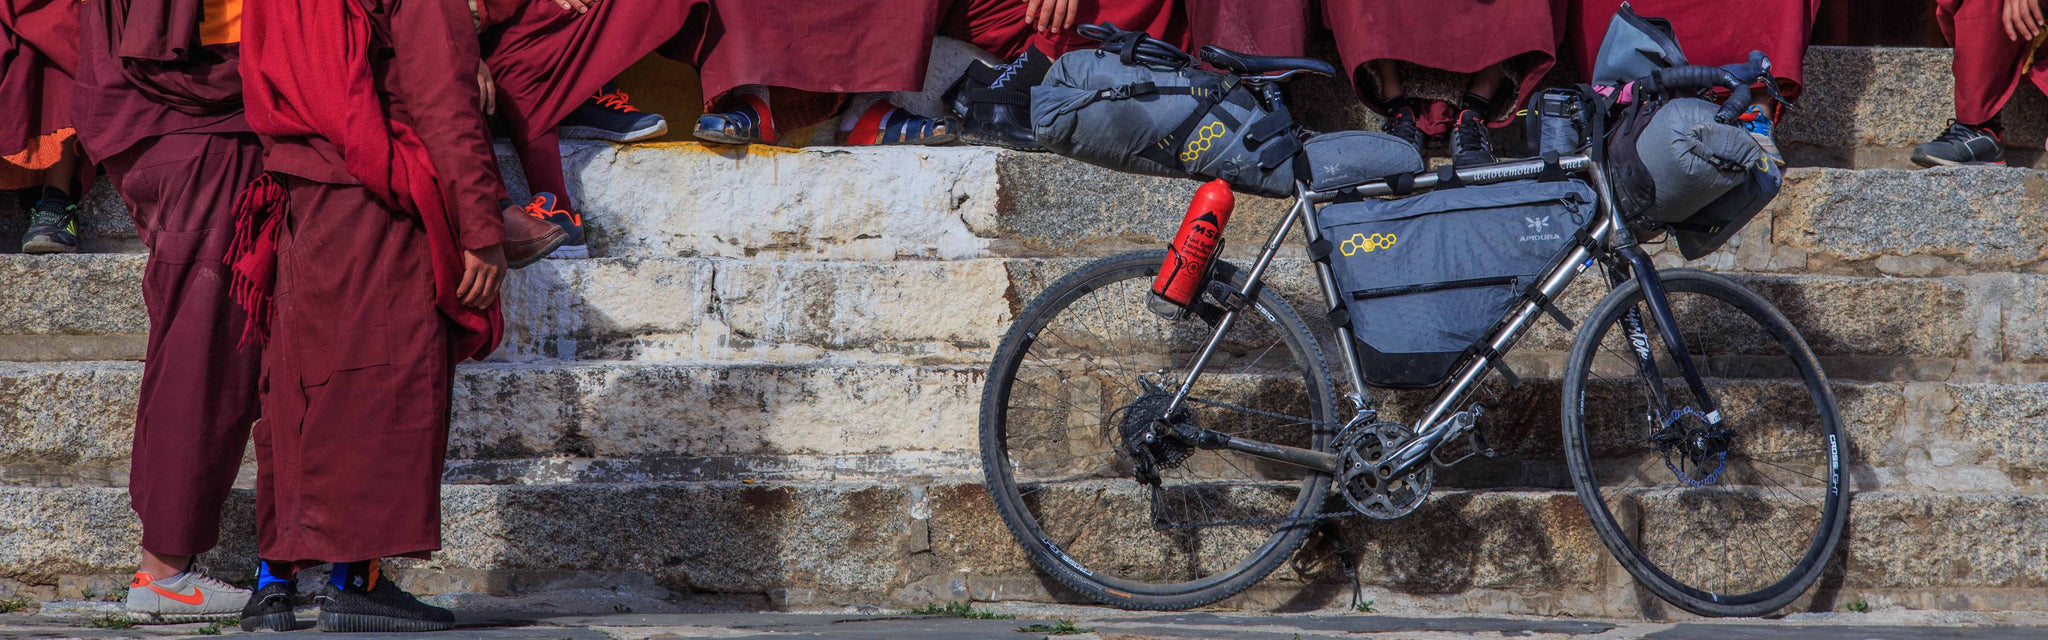 Apidura Bike Packing